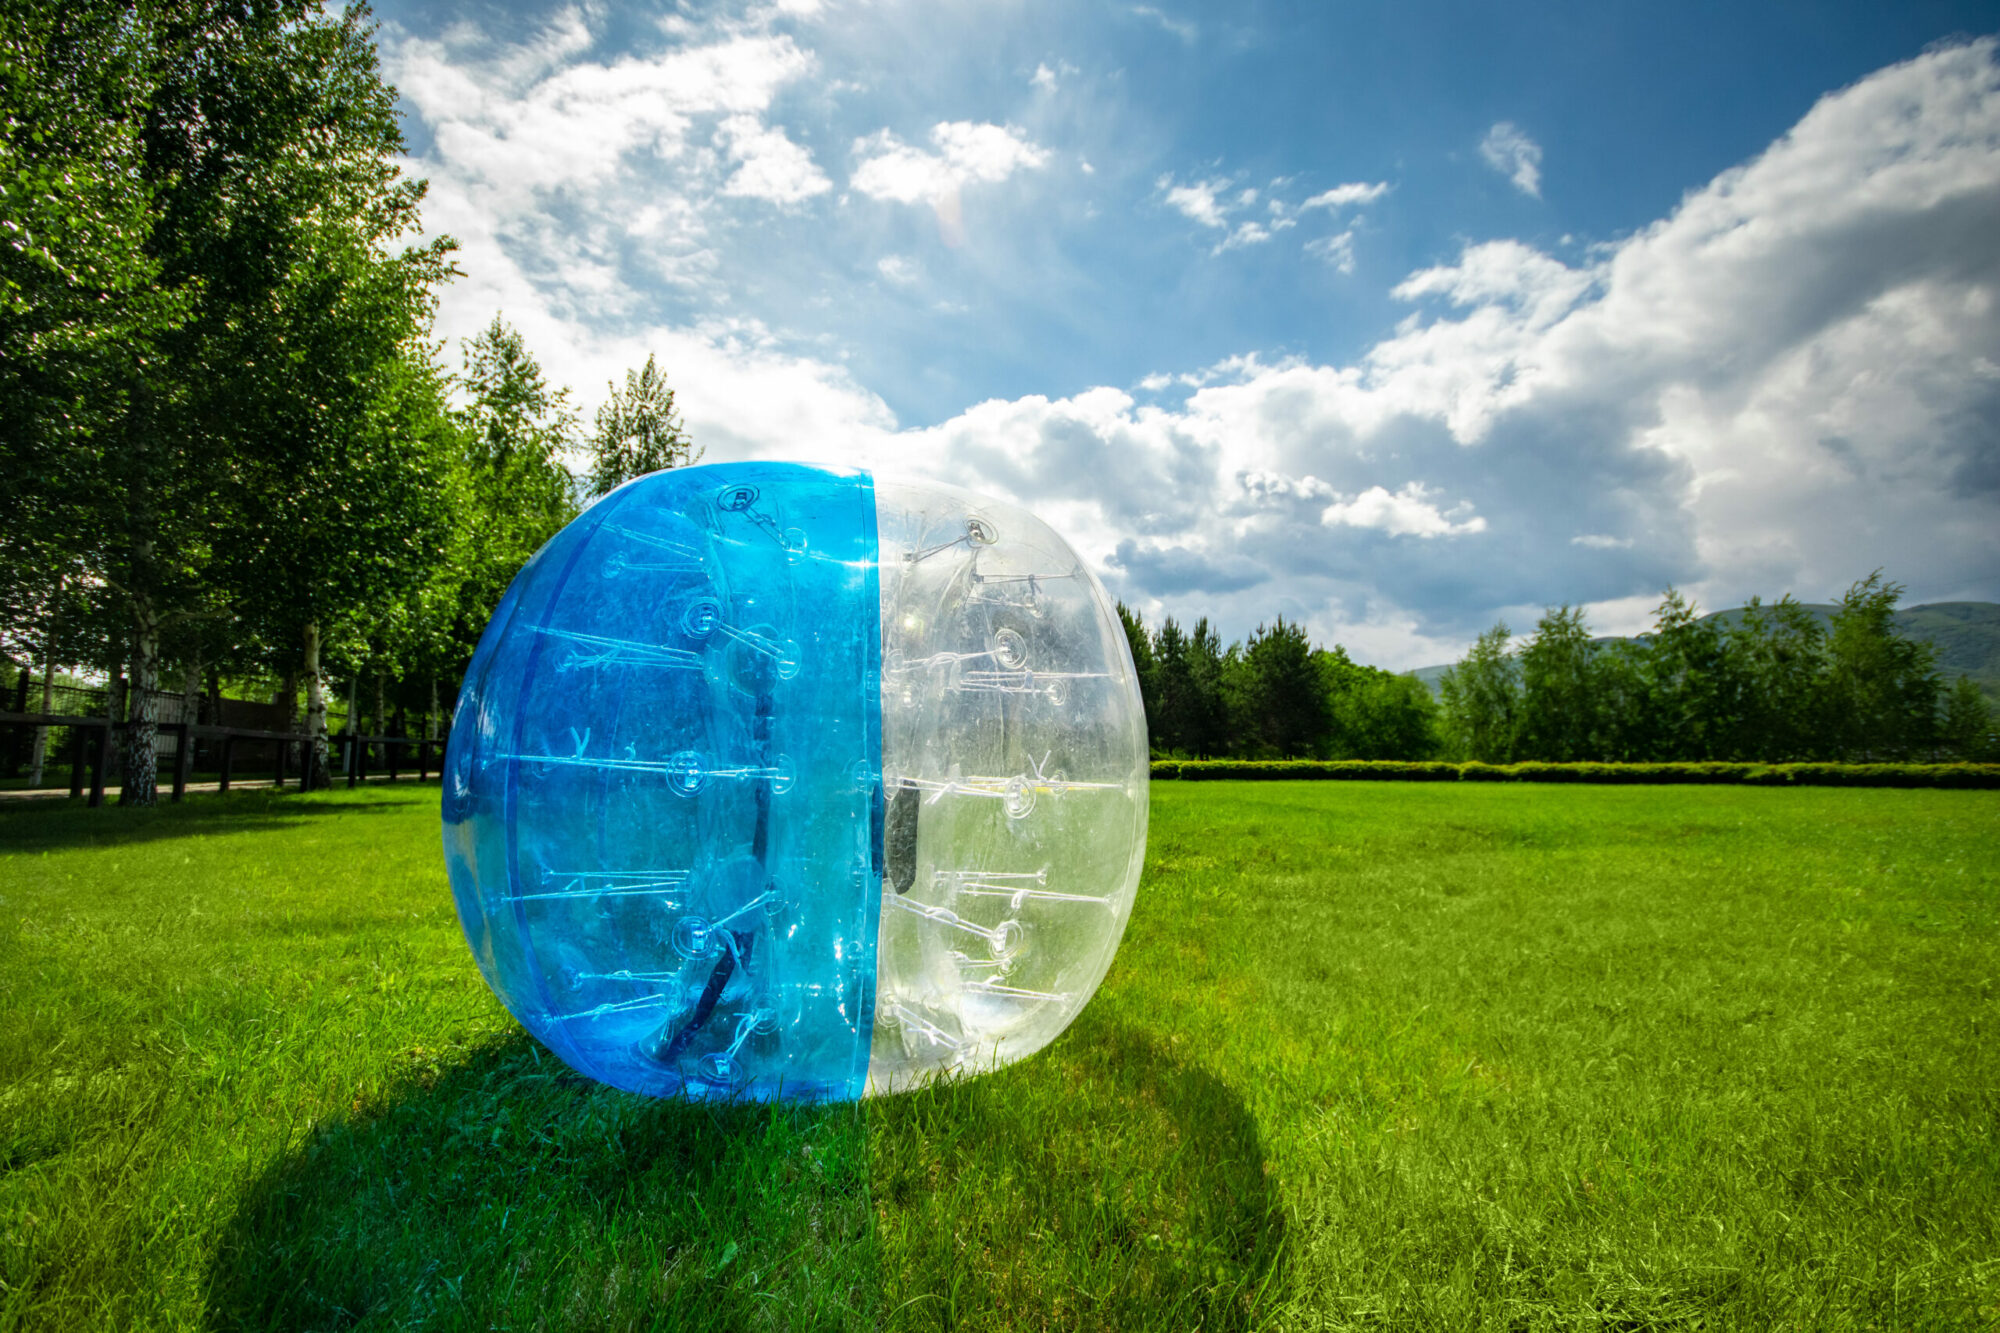 Bubblesoccer - greatest Game Ever Played!